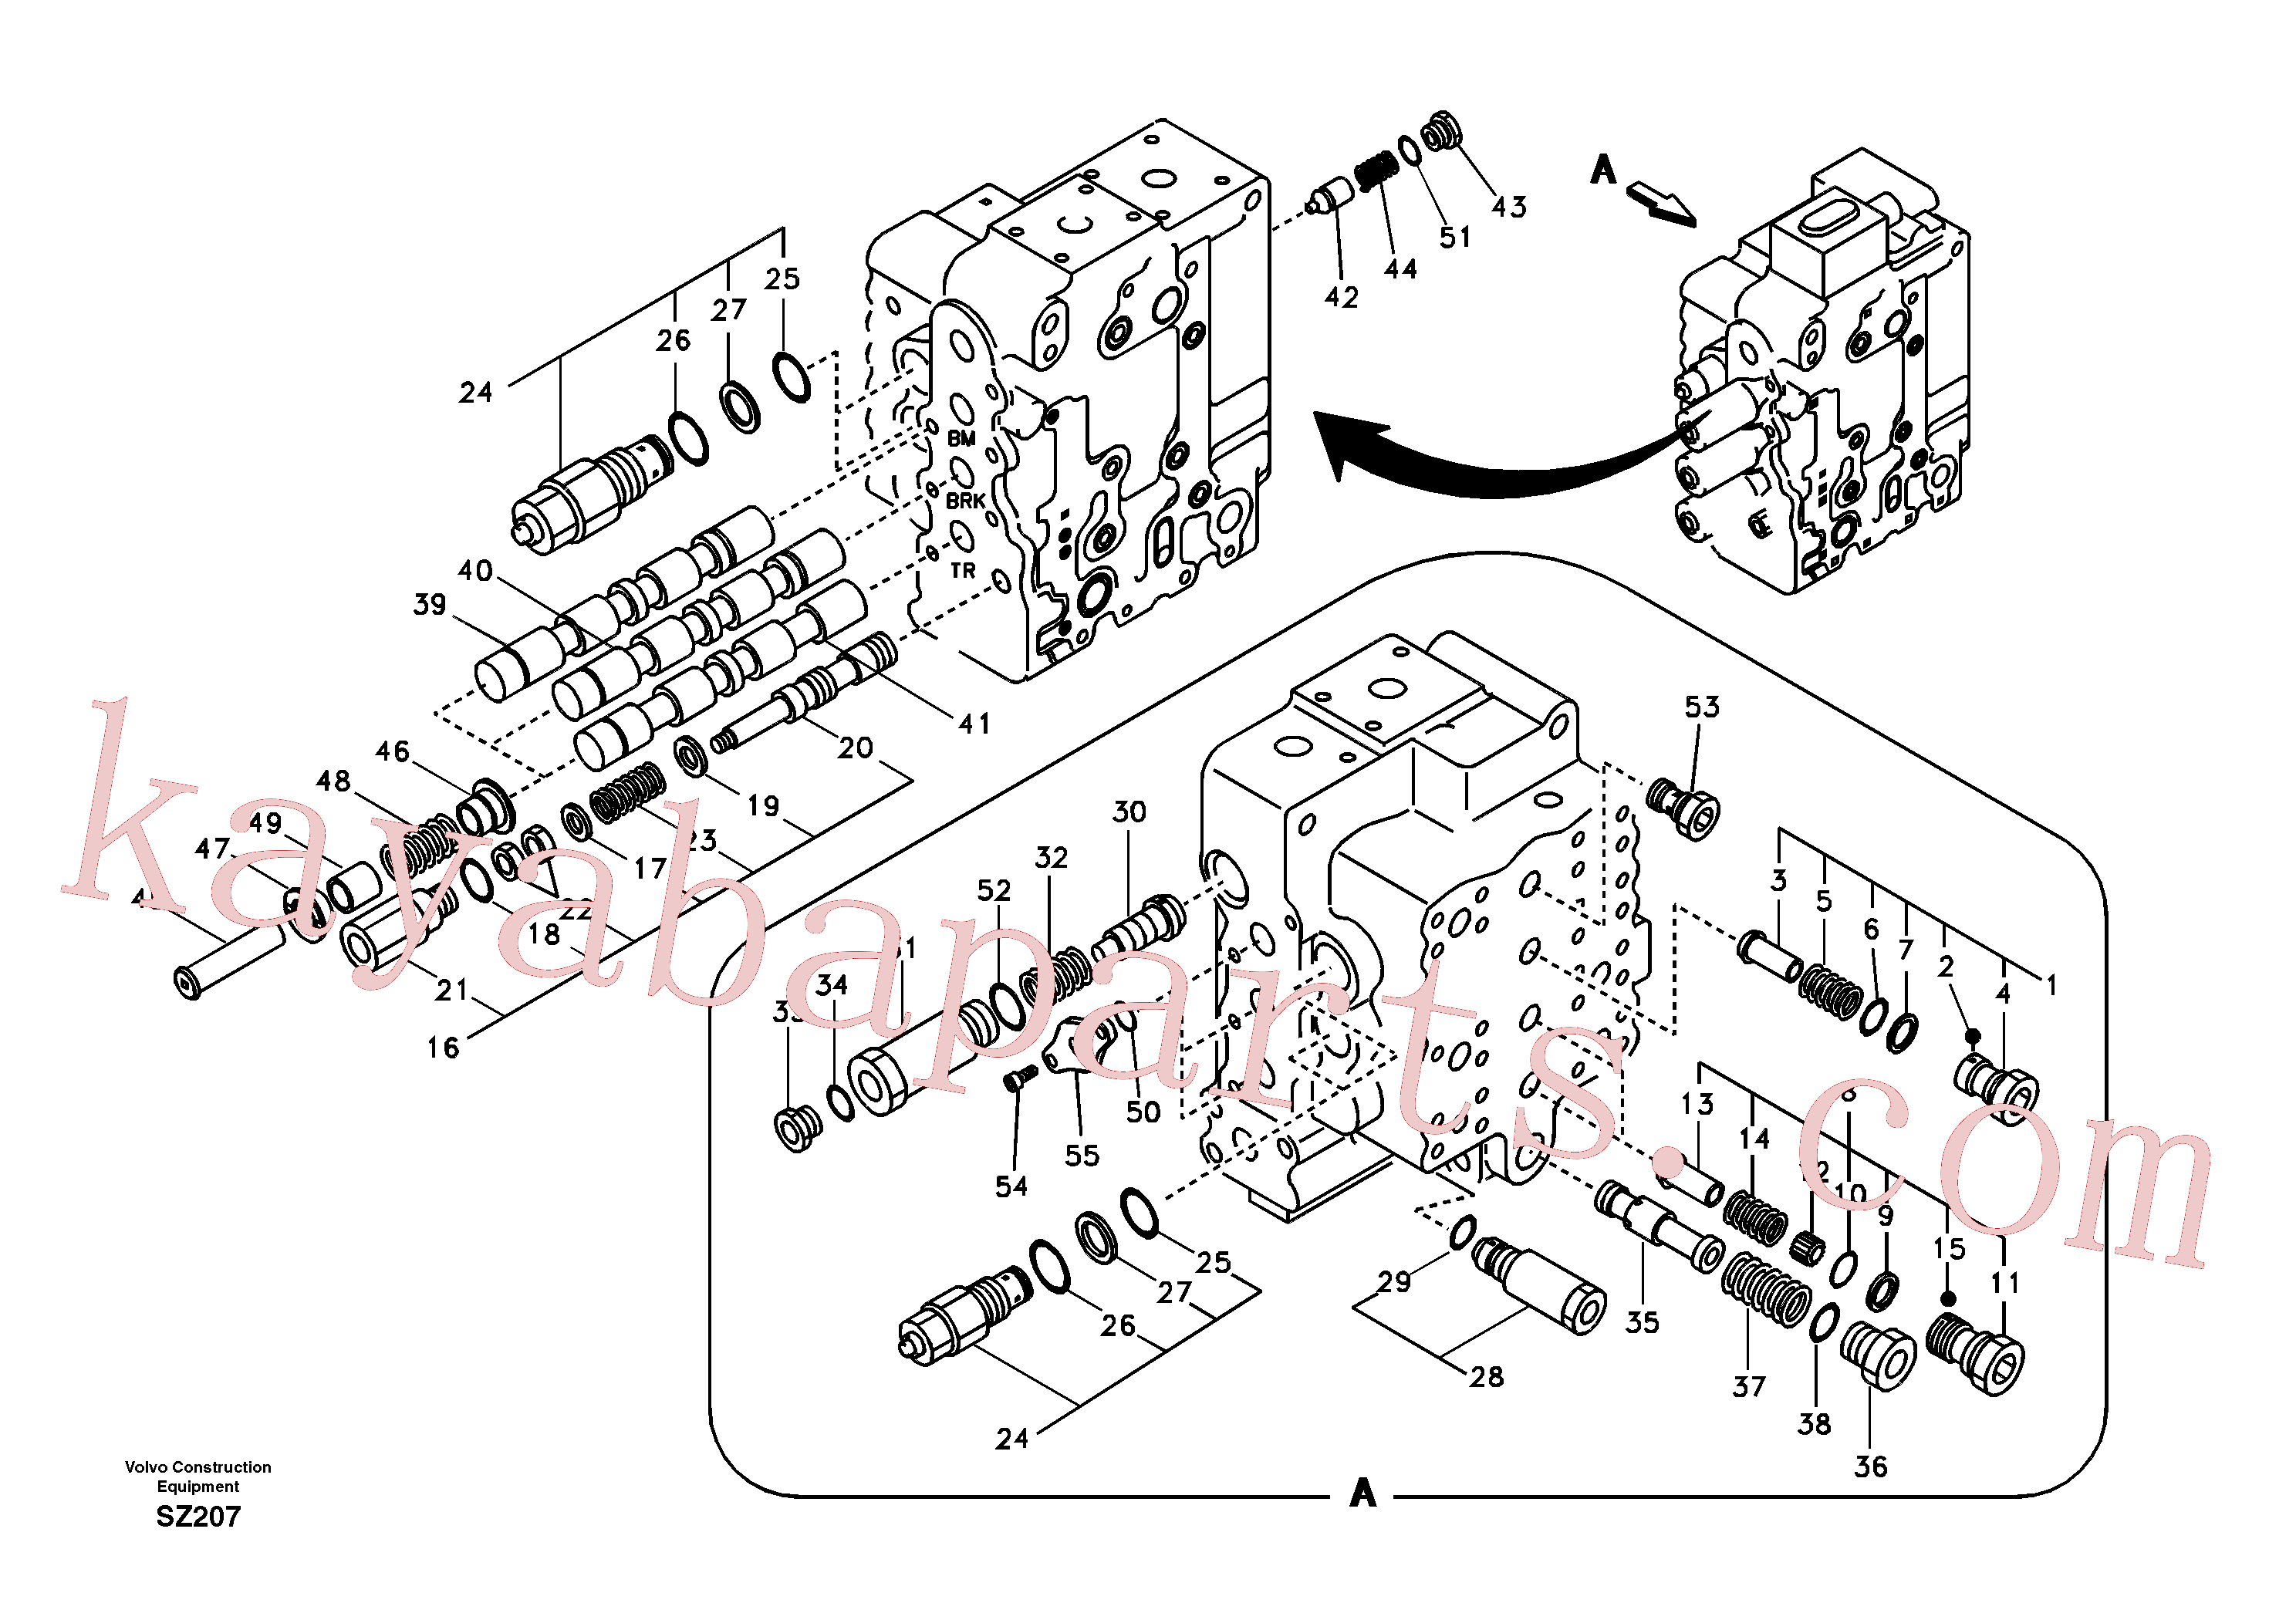 SA7272-03100 for Volvo Main control valve, boom and bucket and travel Rh(SZ207 assembly)